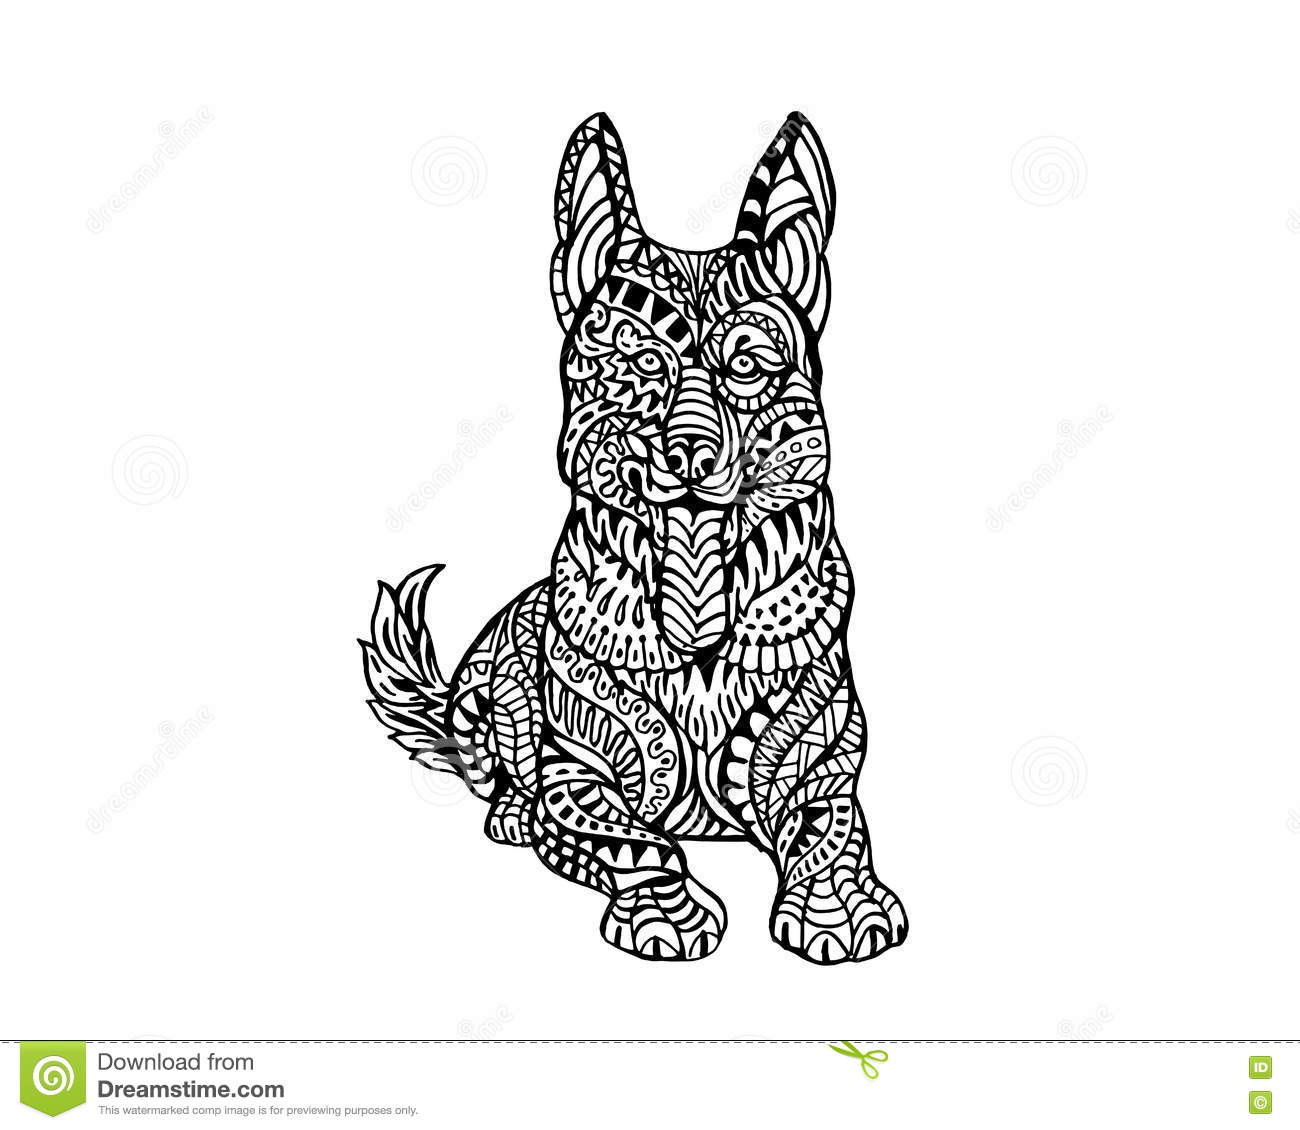 Stock vector ethnic animal doodle detail pattern killer whale - Ethnic Animal Doodle Detail Pattern German Sheppard Dog Zentangle Illustration Stock Vector